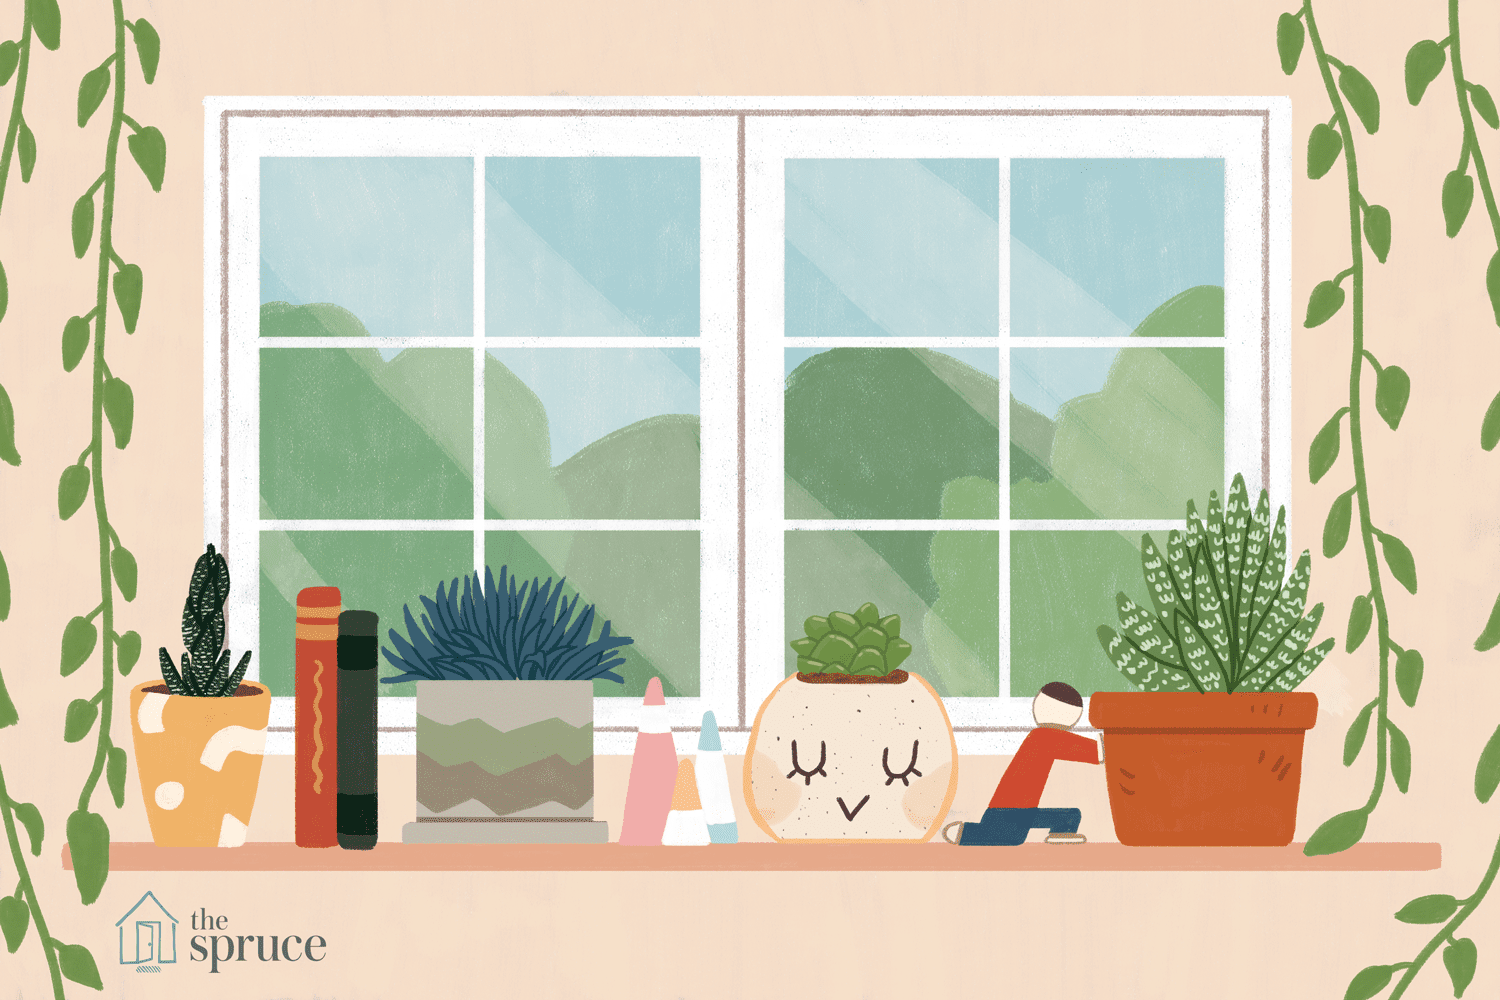 illustration of plants in an office